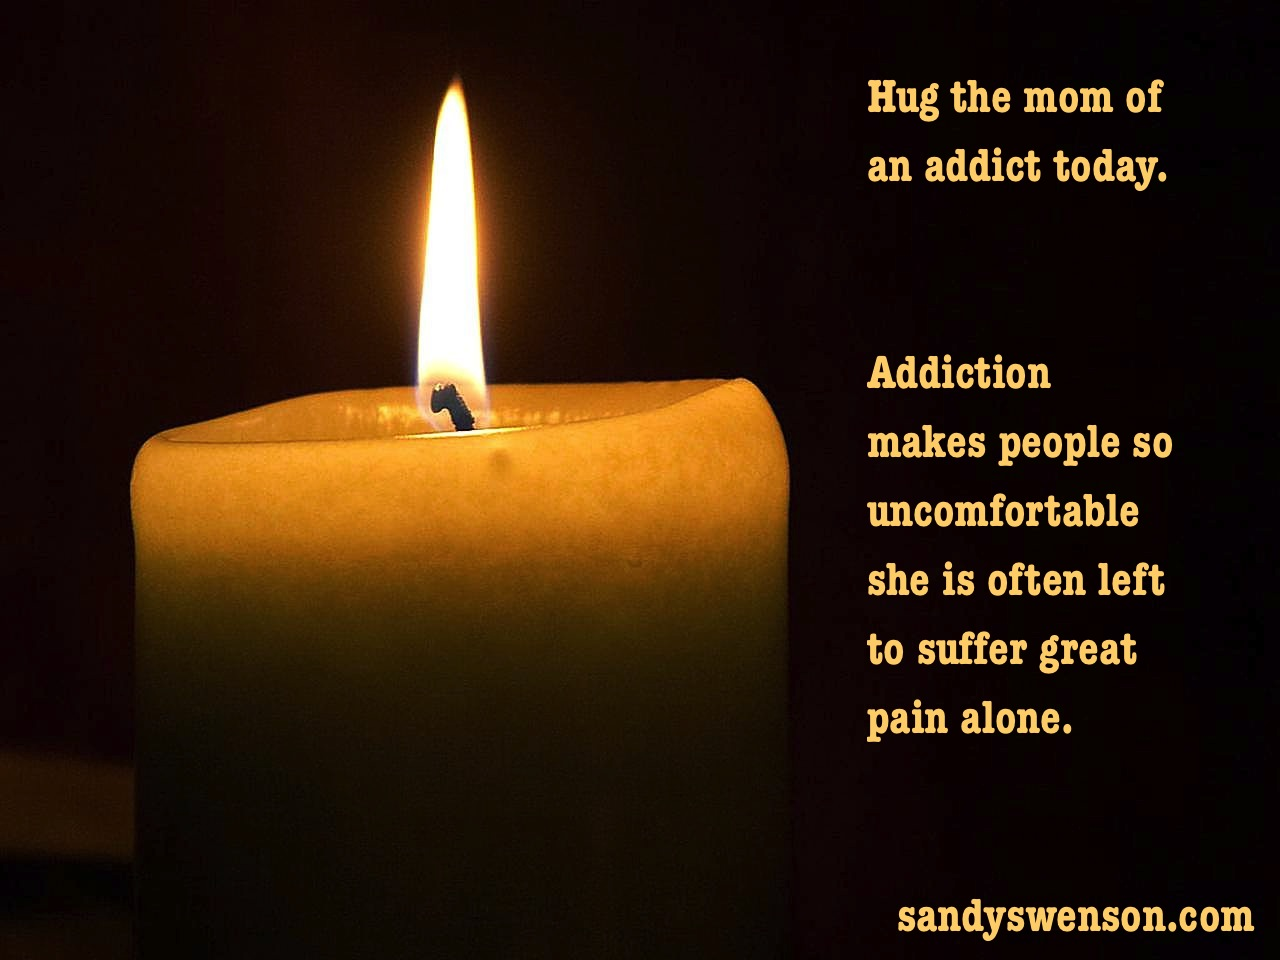 Hug The Mom Of An Addict Today. Addiction Makes People So Uncomfortable She Is Often Left To Suffer Great Pain Alone.